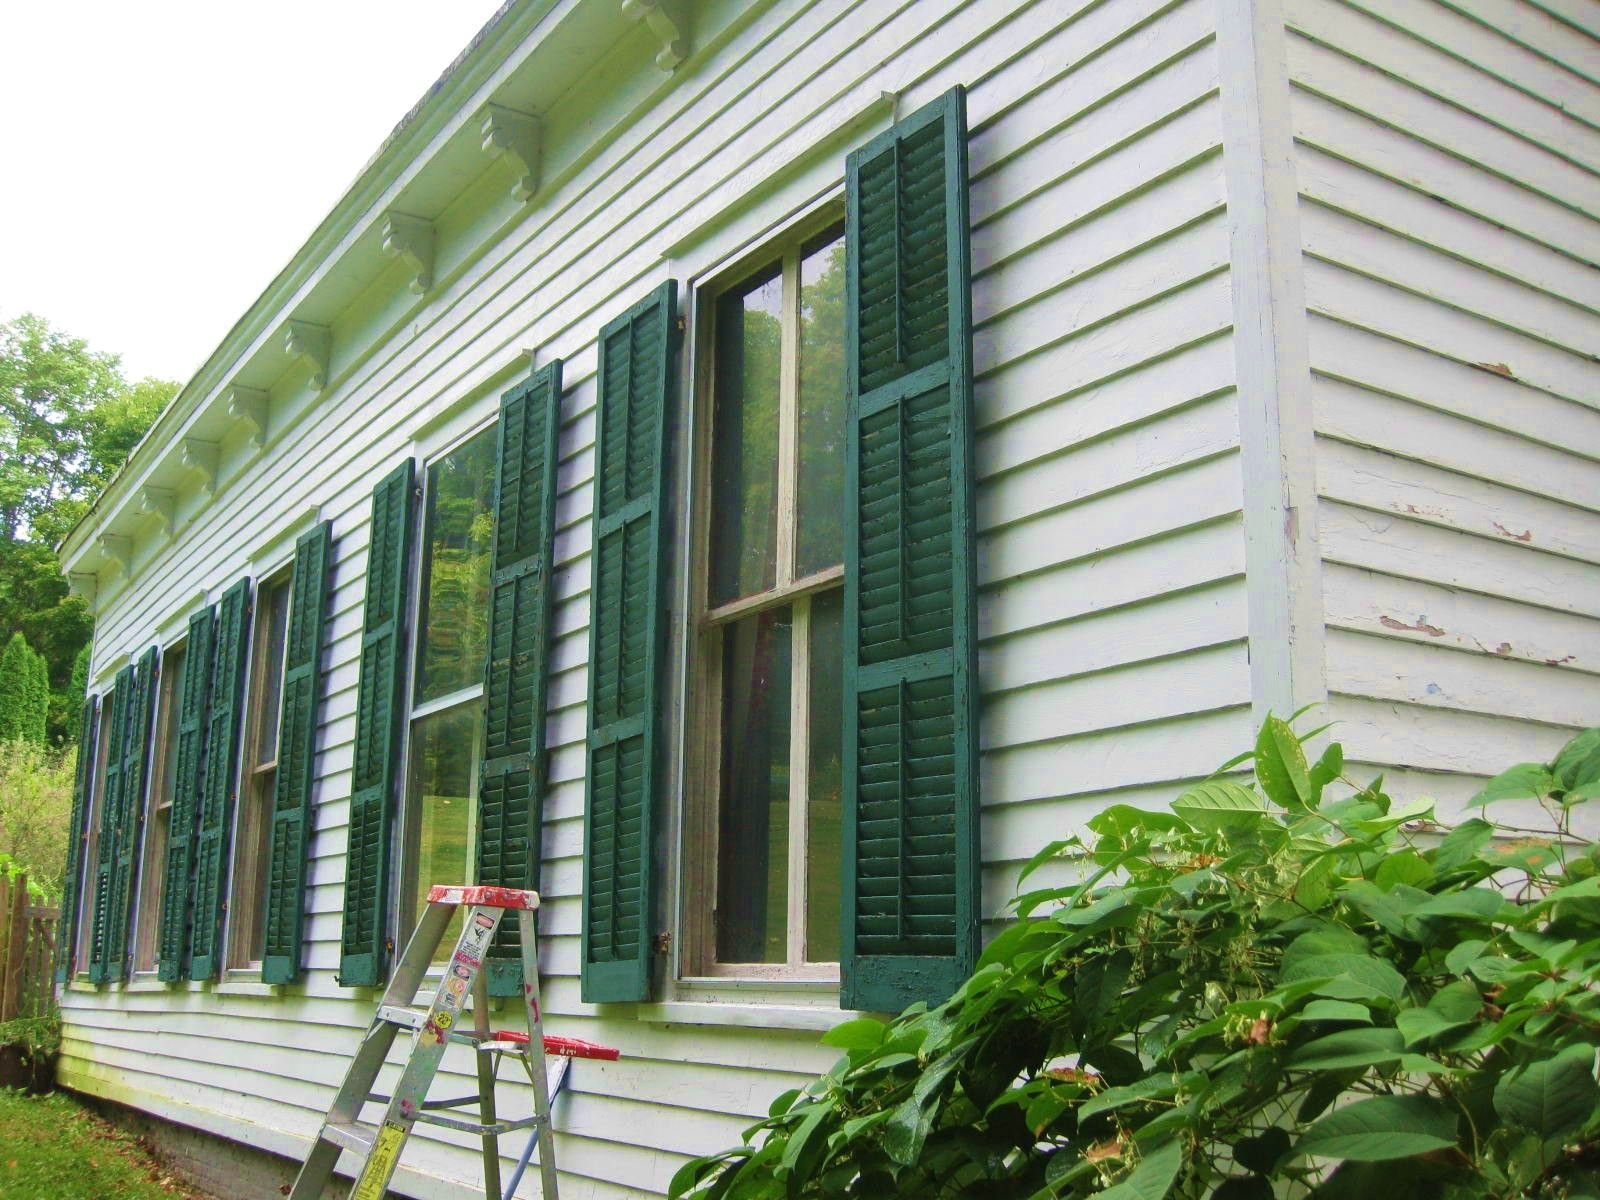 How to clean house windows - Cleaning Old Windows On Old Houses